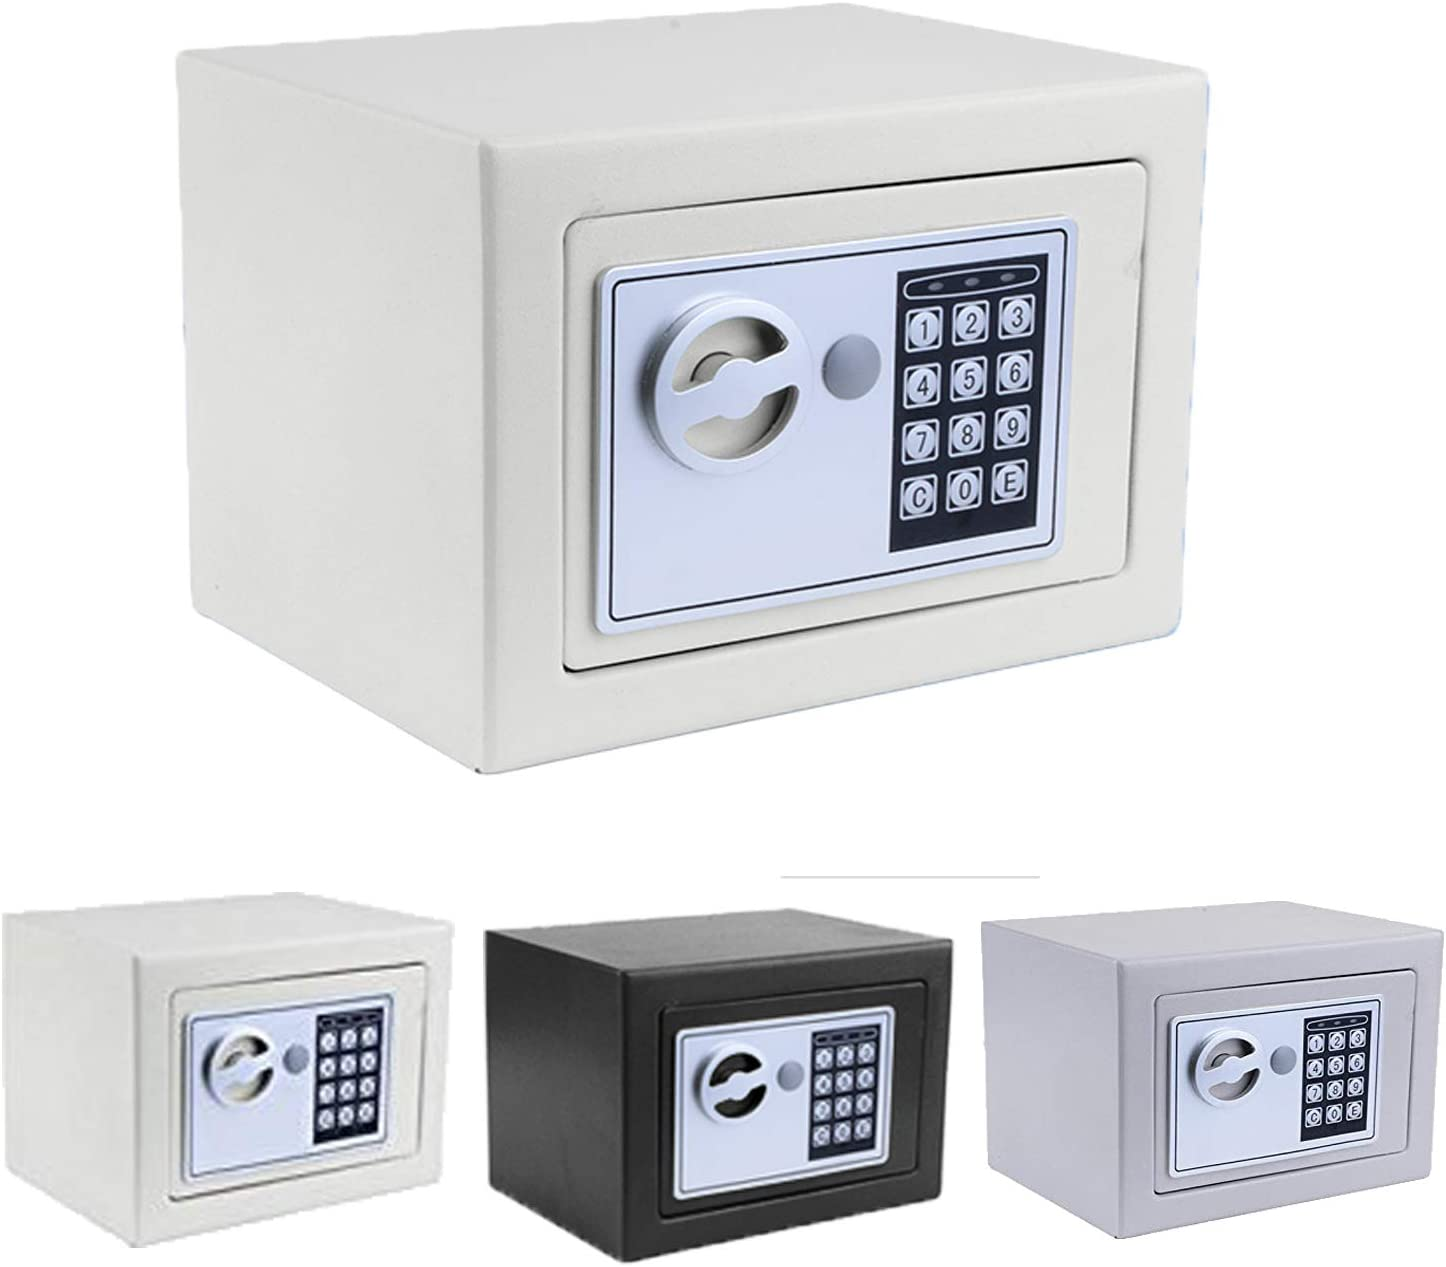 Digital Security Safe Box, Safety Boxes Safes and Lock Boxes for Home Office Hotel Jewelry Gun Cash Storage with Electronic Lock